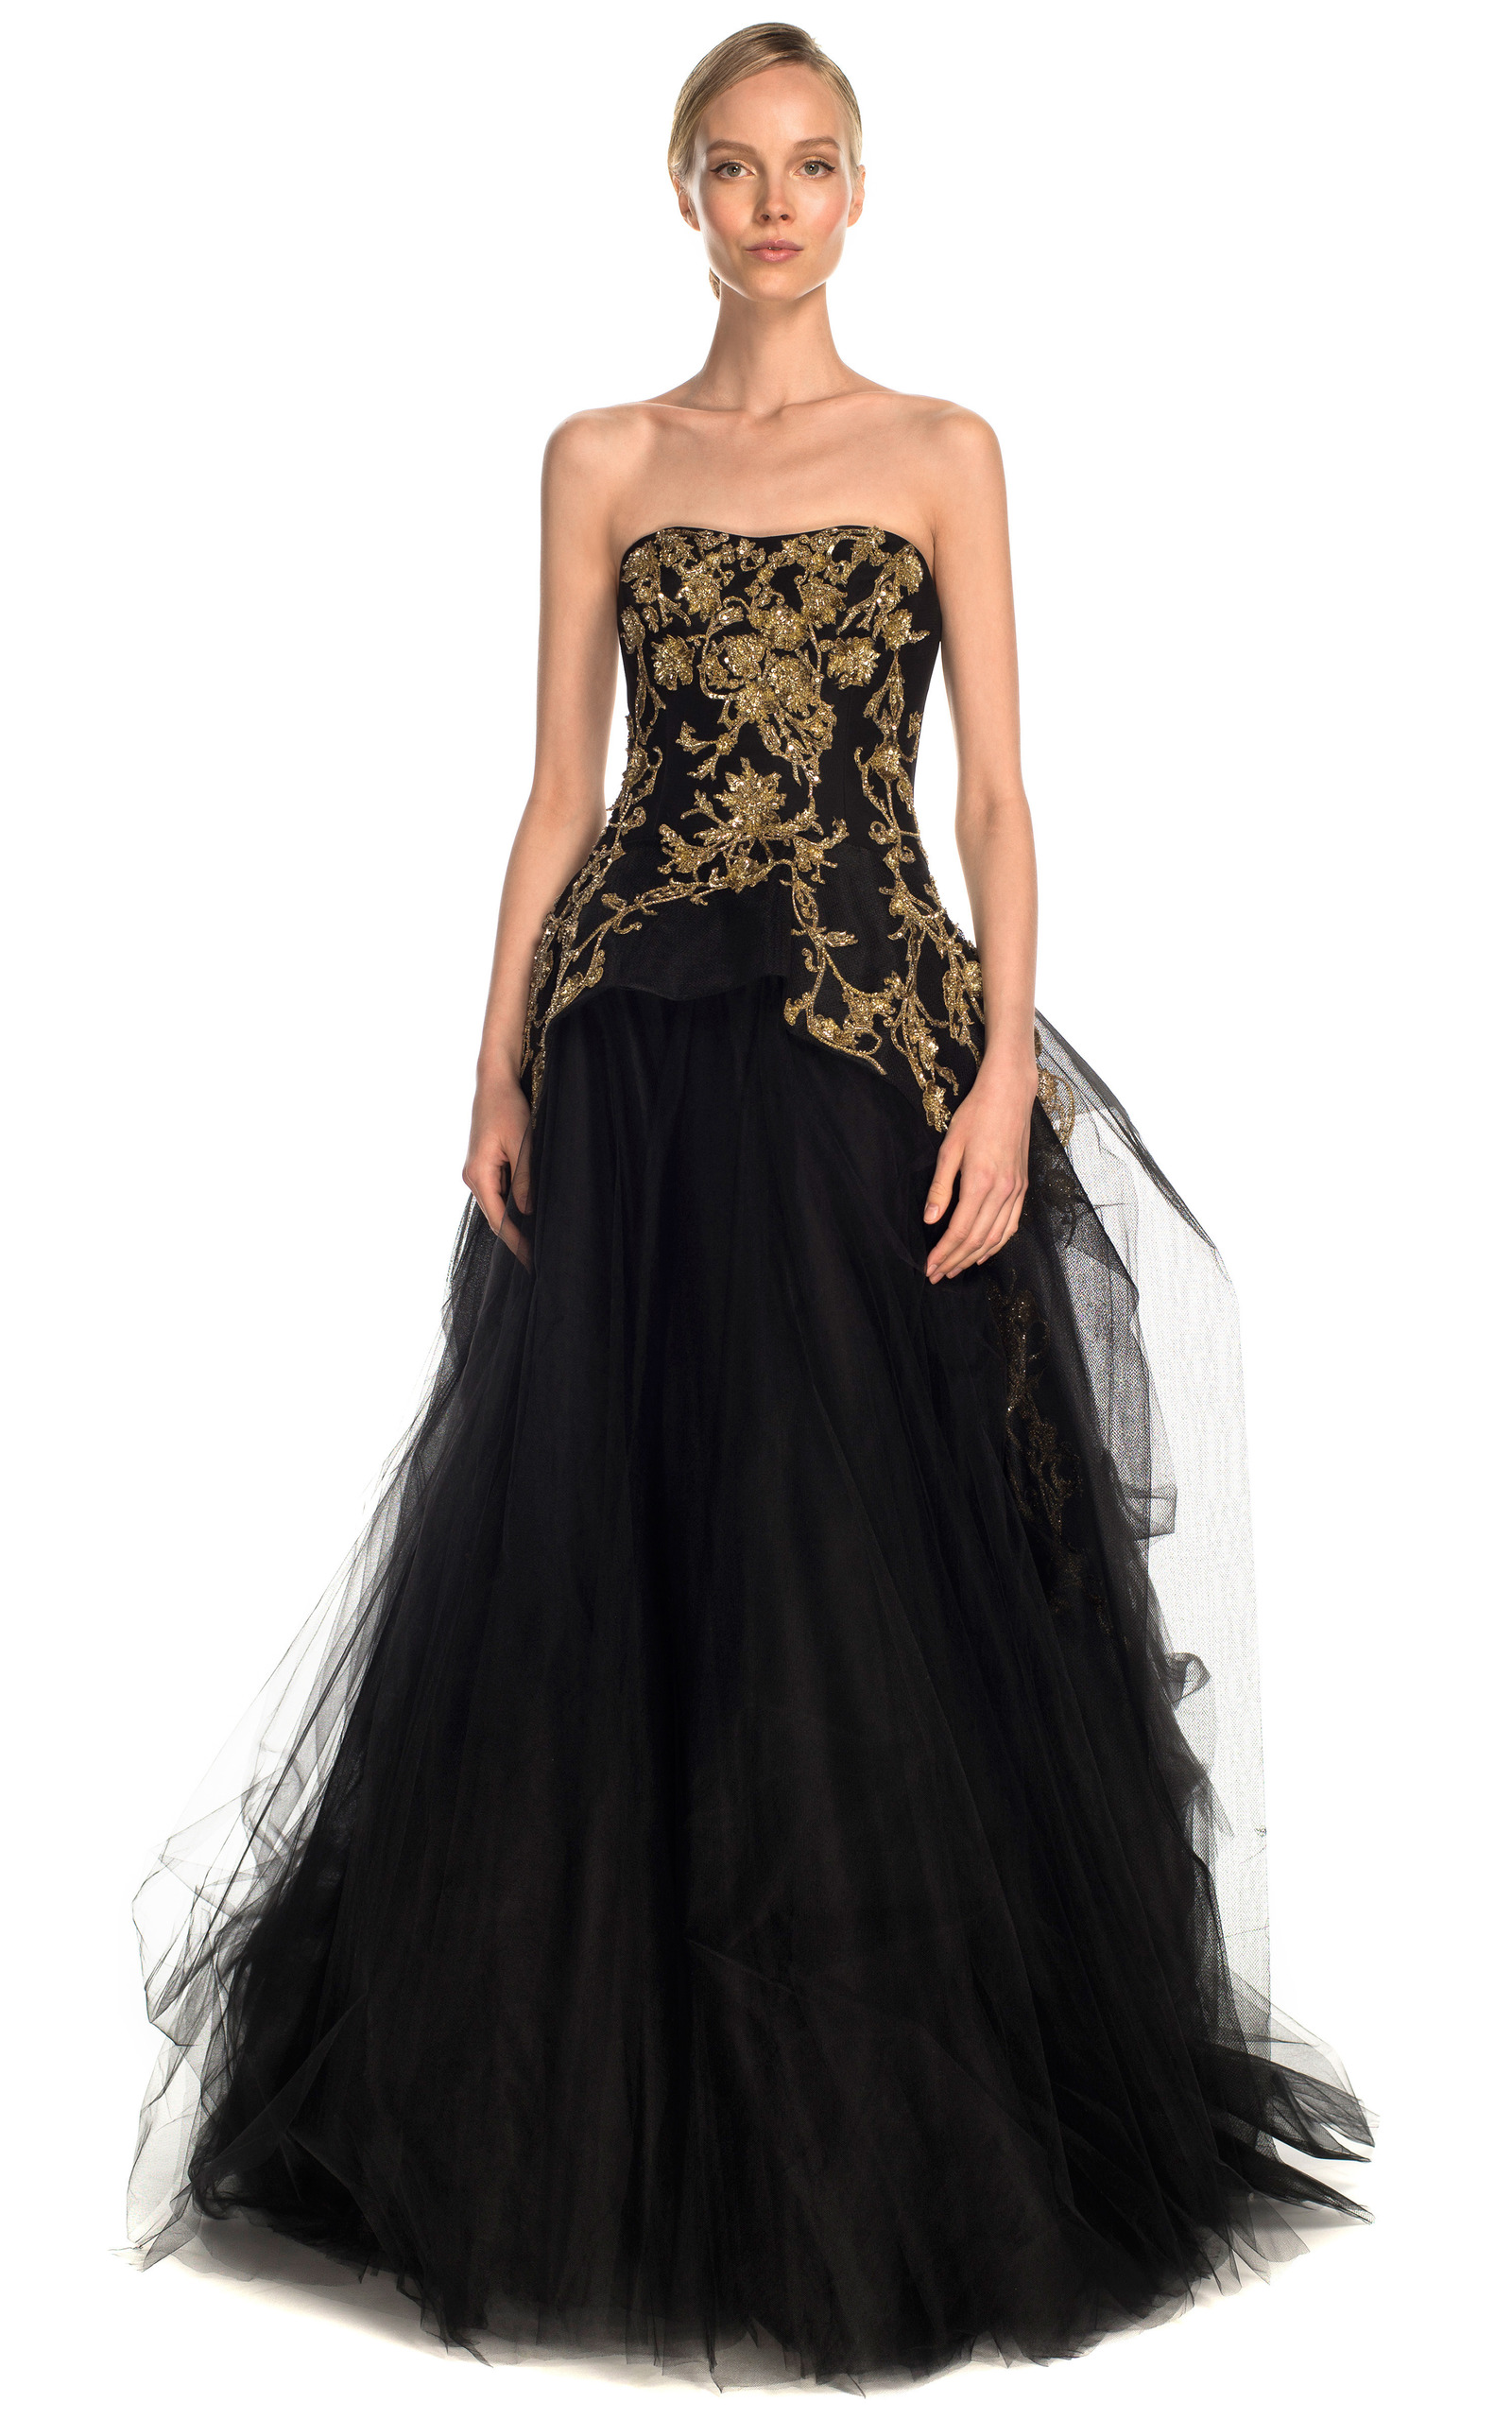 Tulle Ball Gown With Structured Bodice By Marchesa Moda